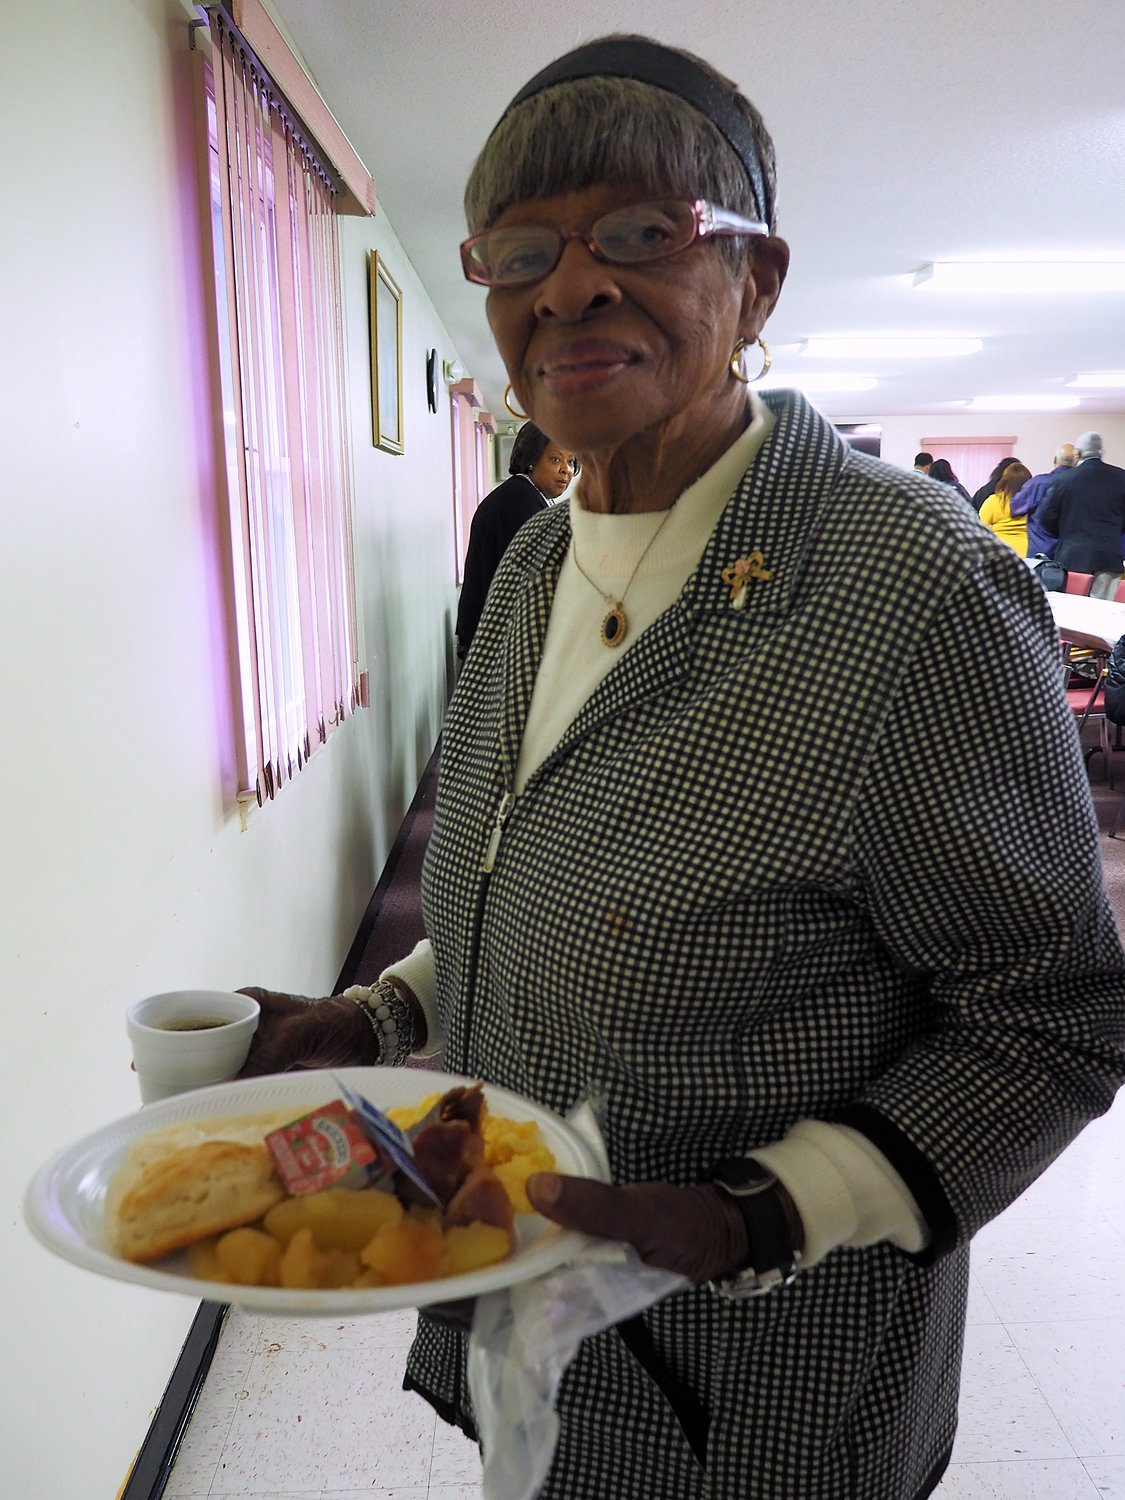 Swannie Durant of Siler City shows off her plate of breakfast goodies that were served at the breakfast.